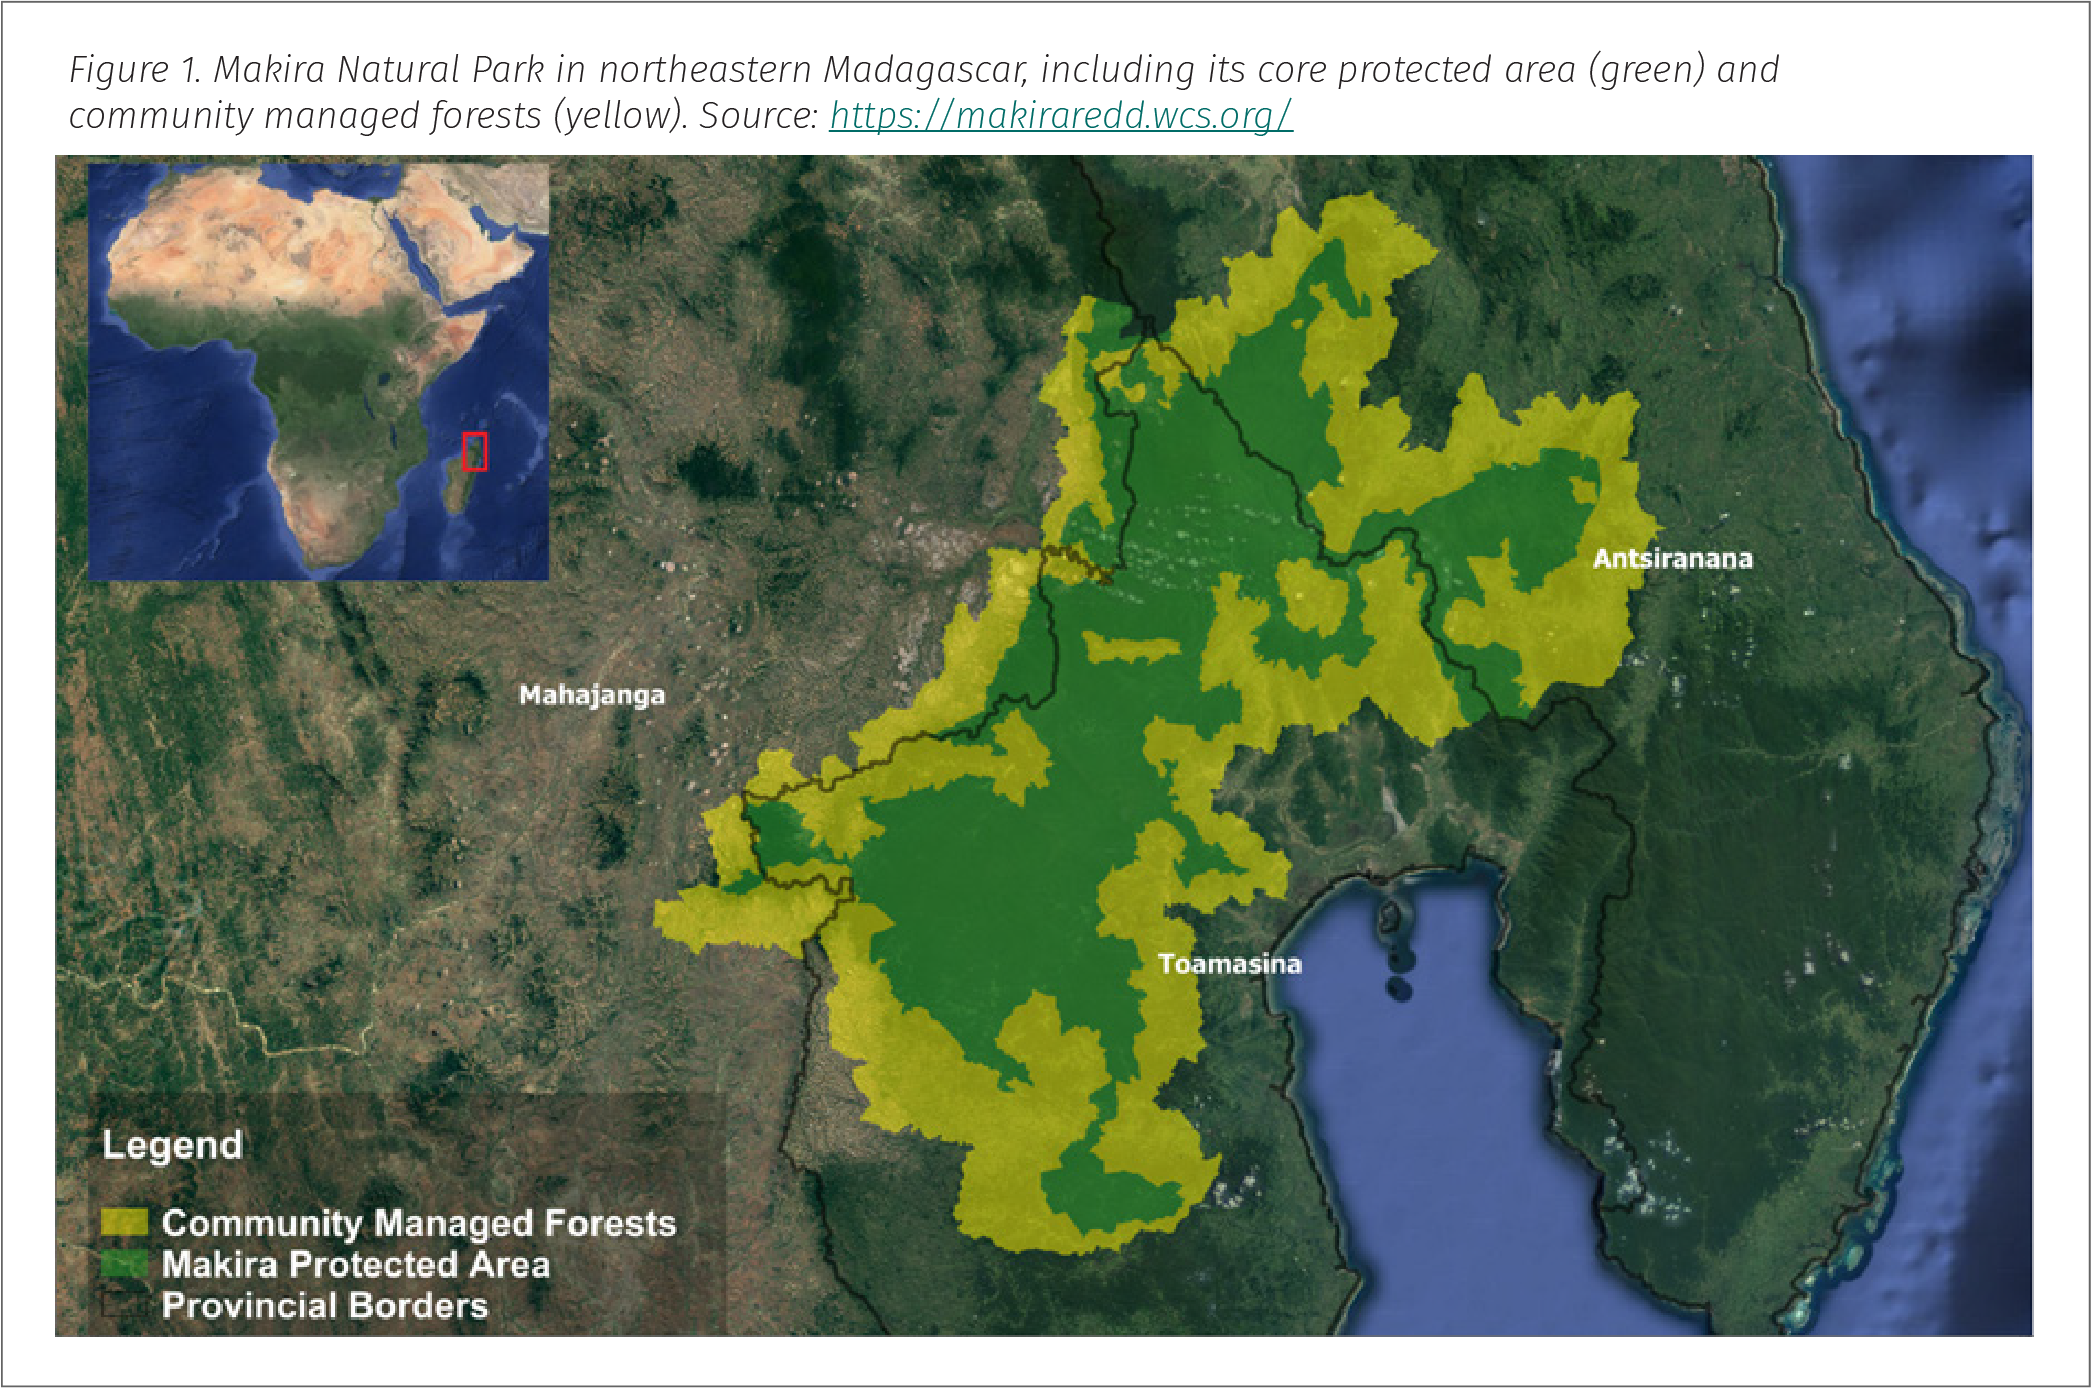 Figure 1. Makira Natural Park in northeastern Madagascar, including its core protected area (green) and community managed forests (yellow)